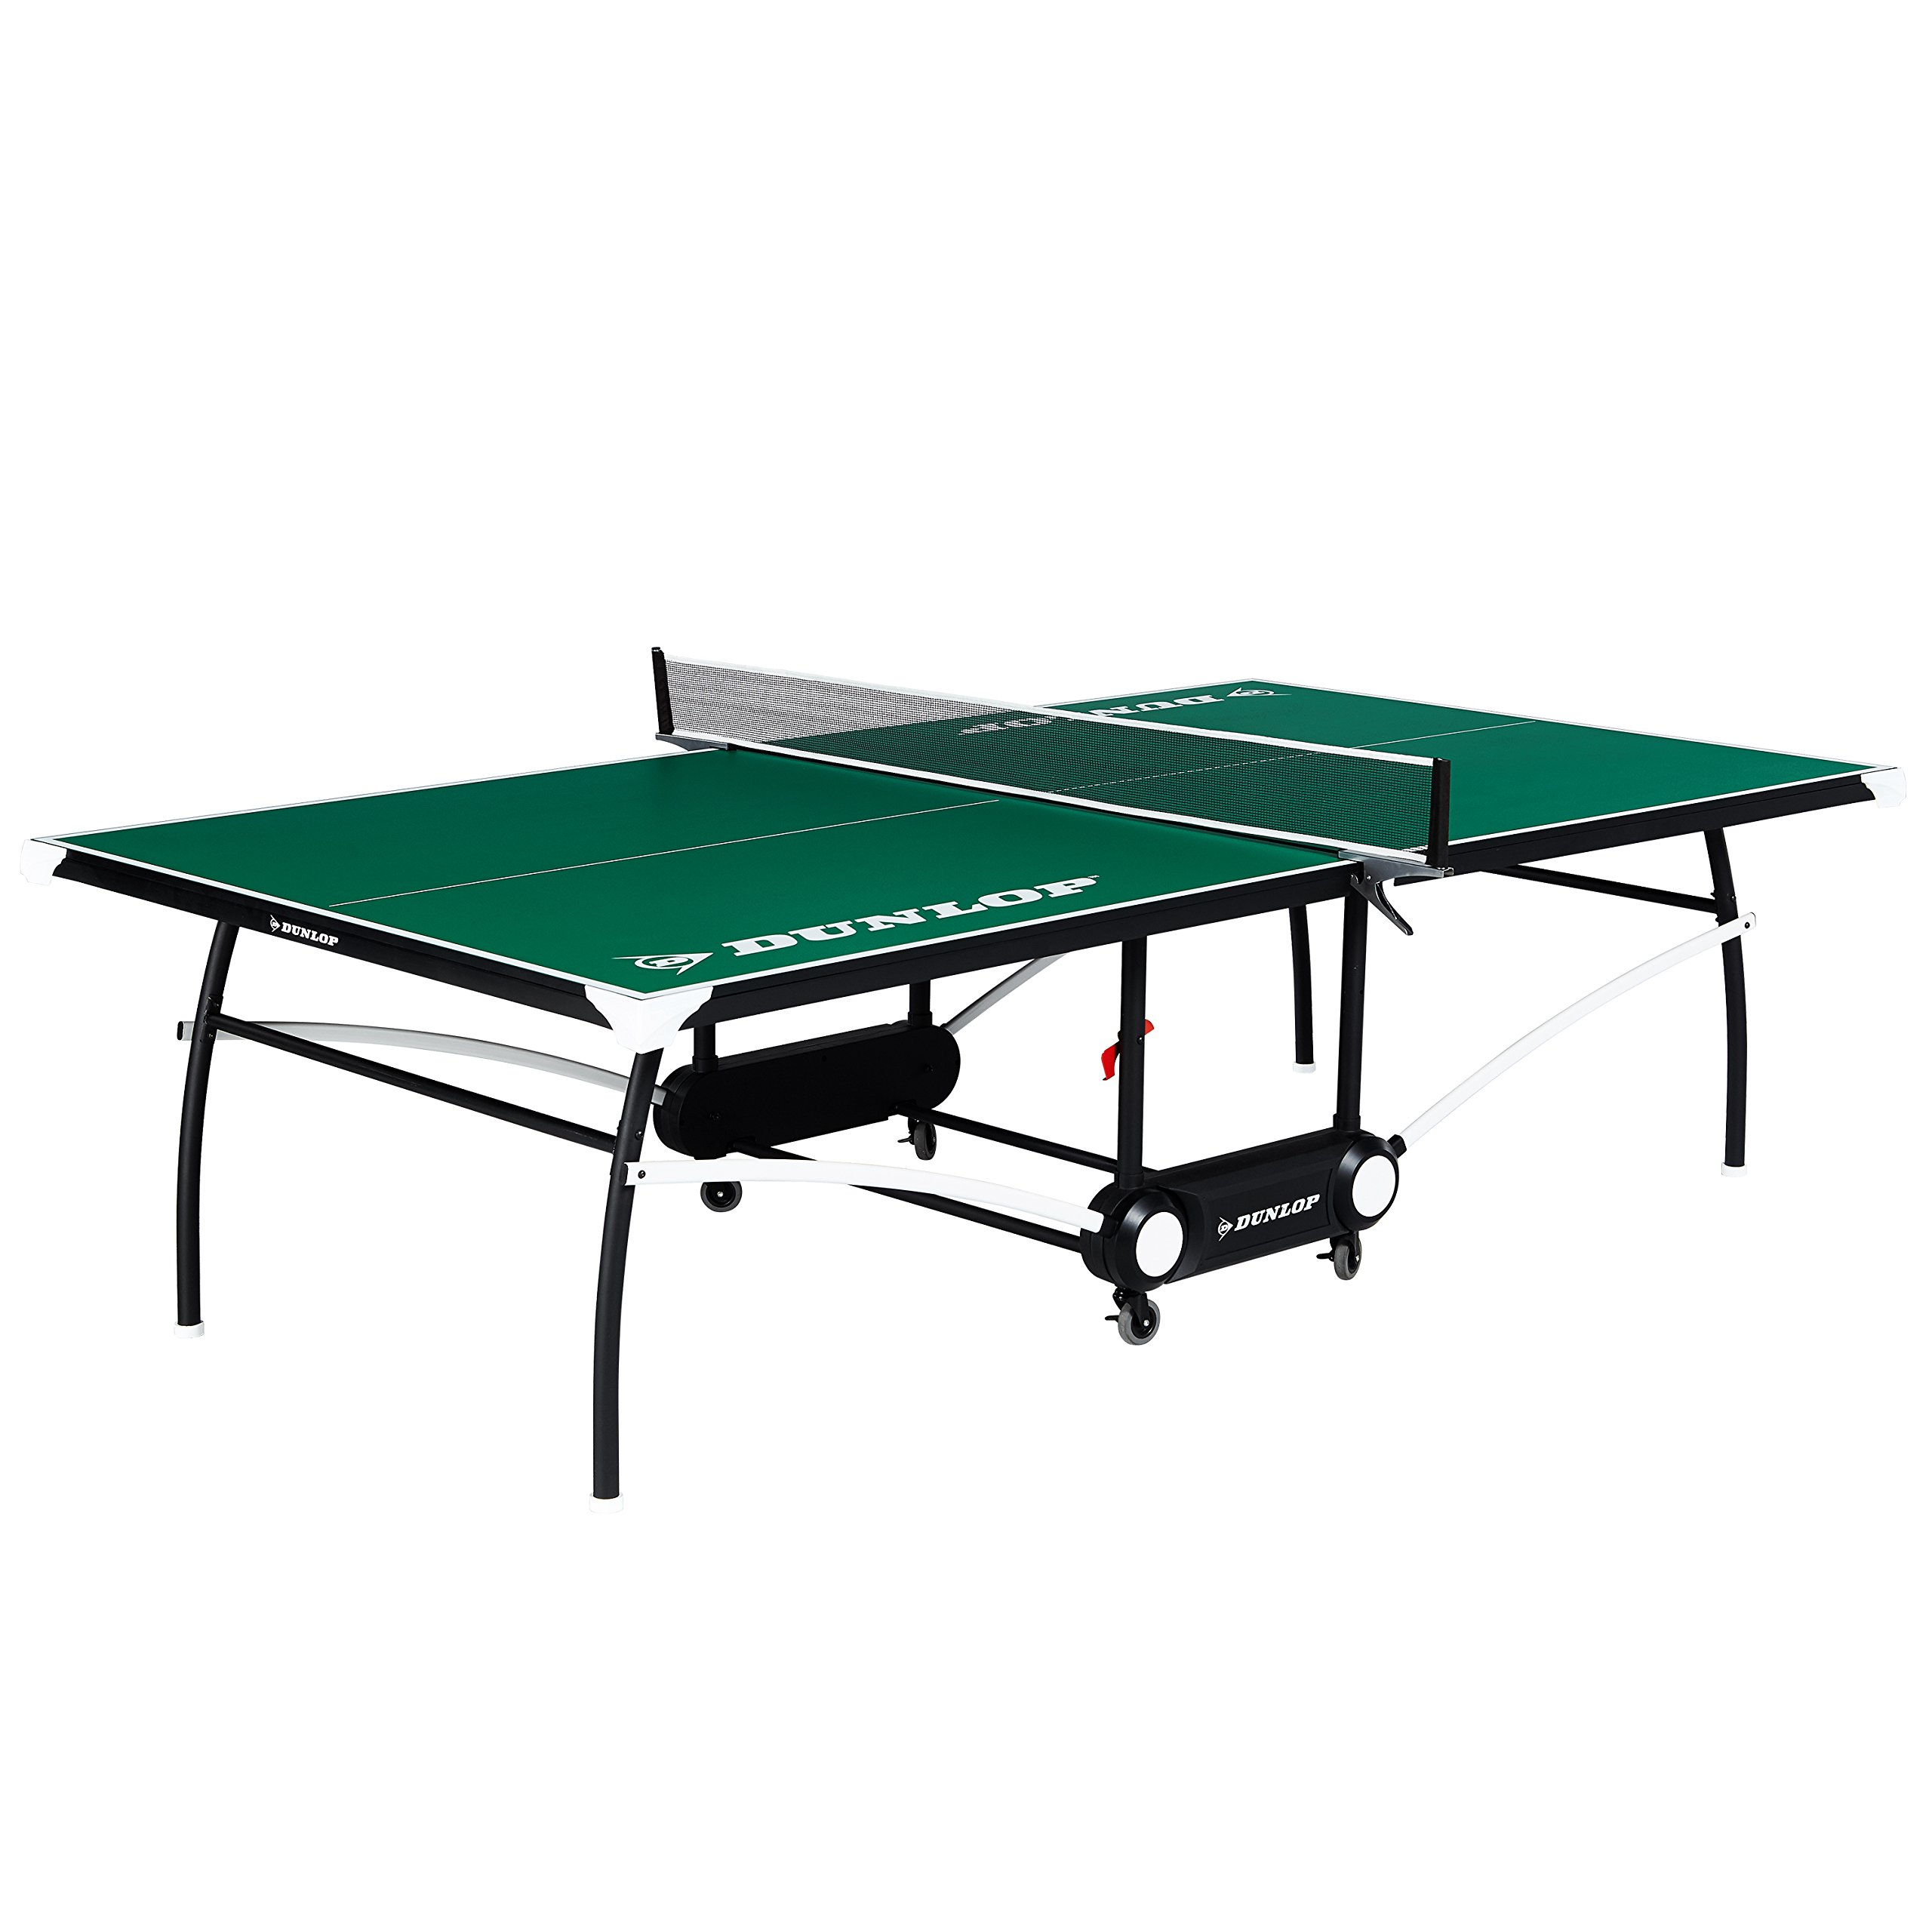 DUNLOP 2Piece Table Tennis Table by Dunlop